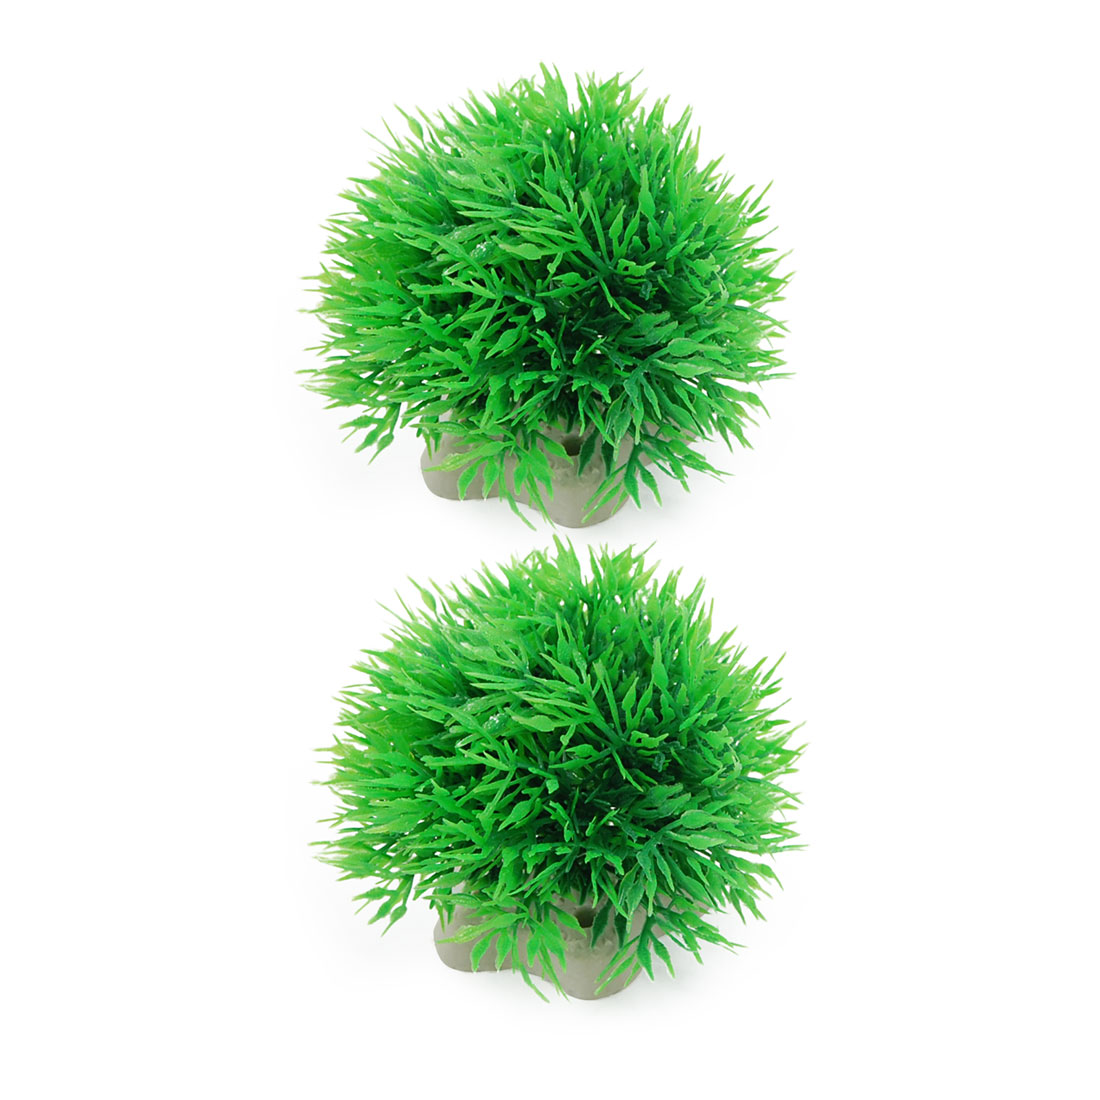 Aquarium Fish Tank Green Plastic Plants Decoration 2 Pcs Rbvvv